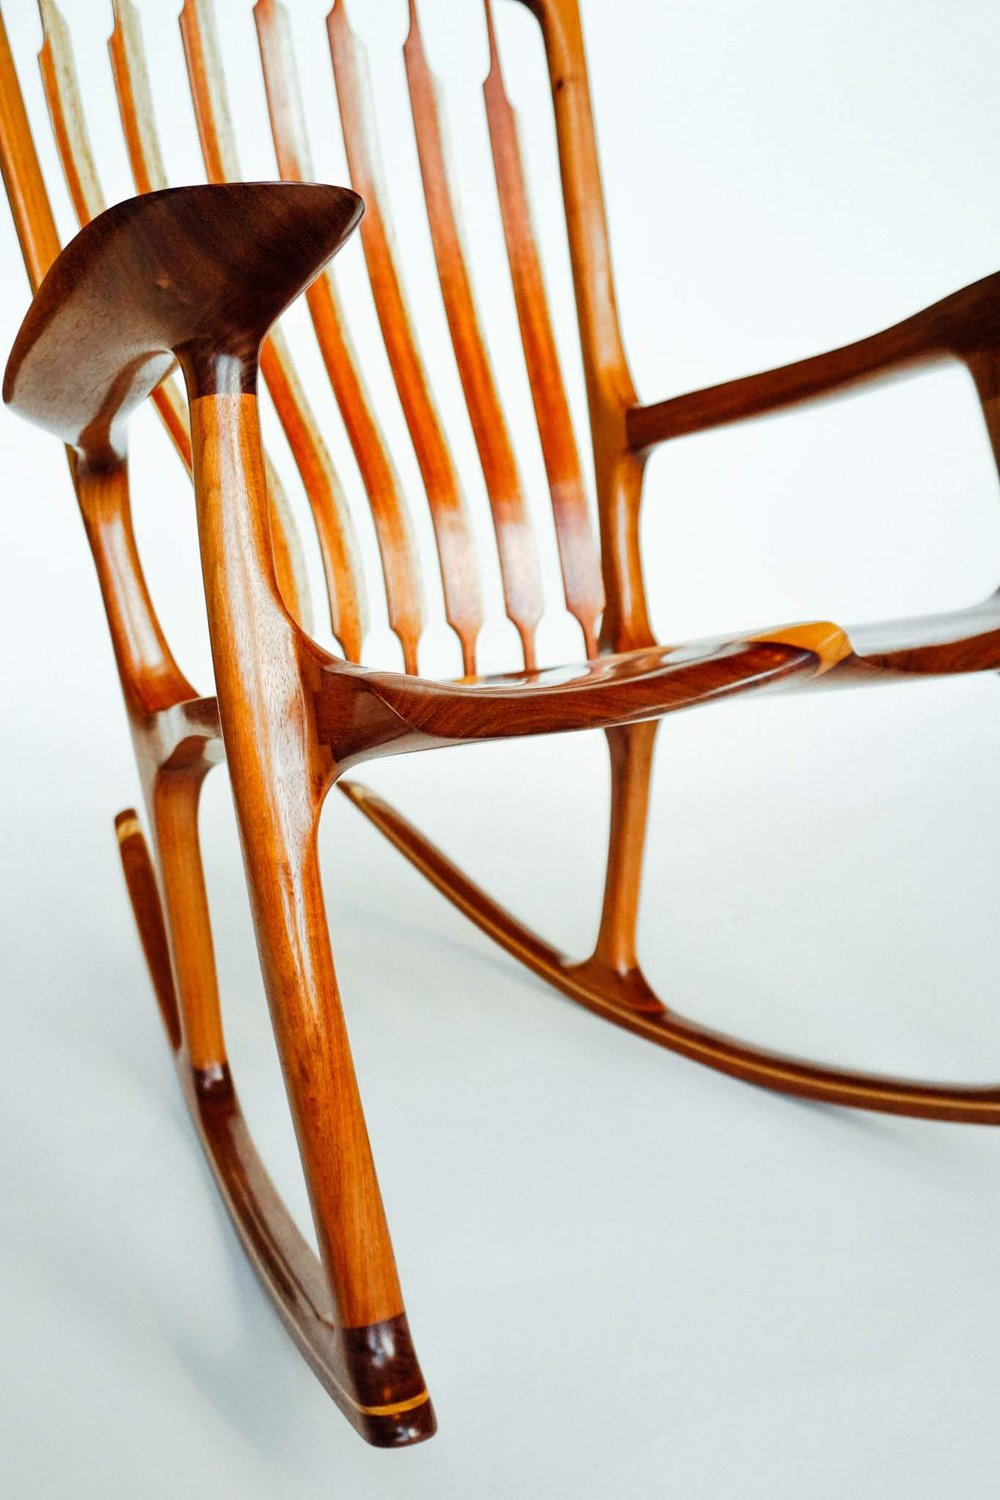 The thin profile of the seat and arms provides a more contemporary look to a traditional piece.